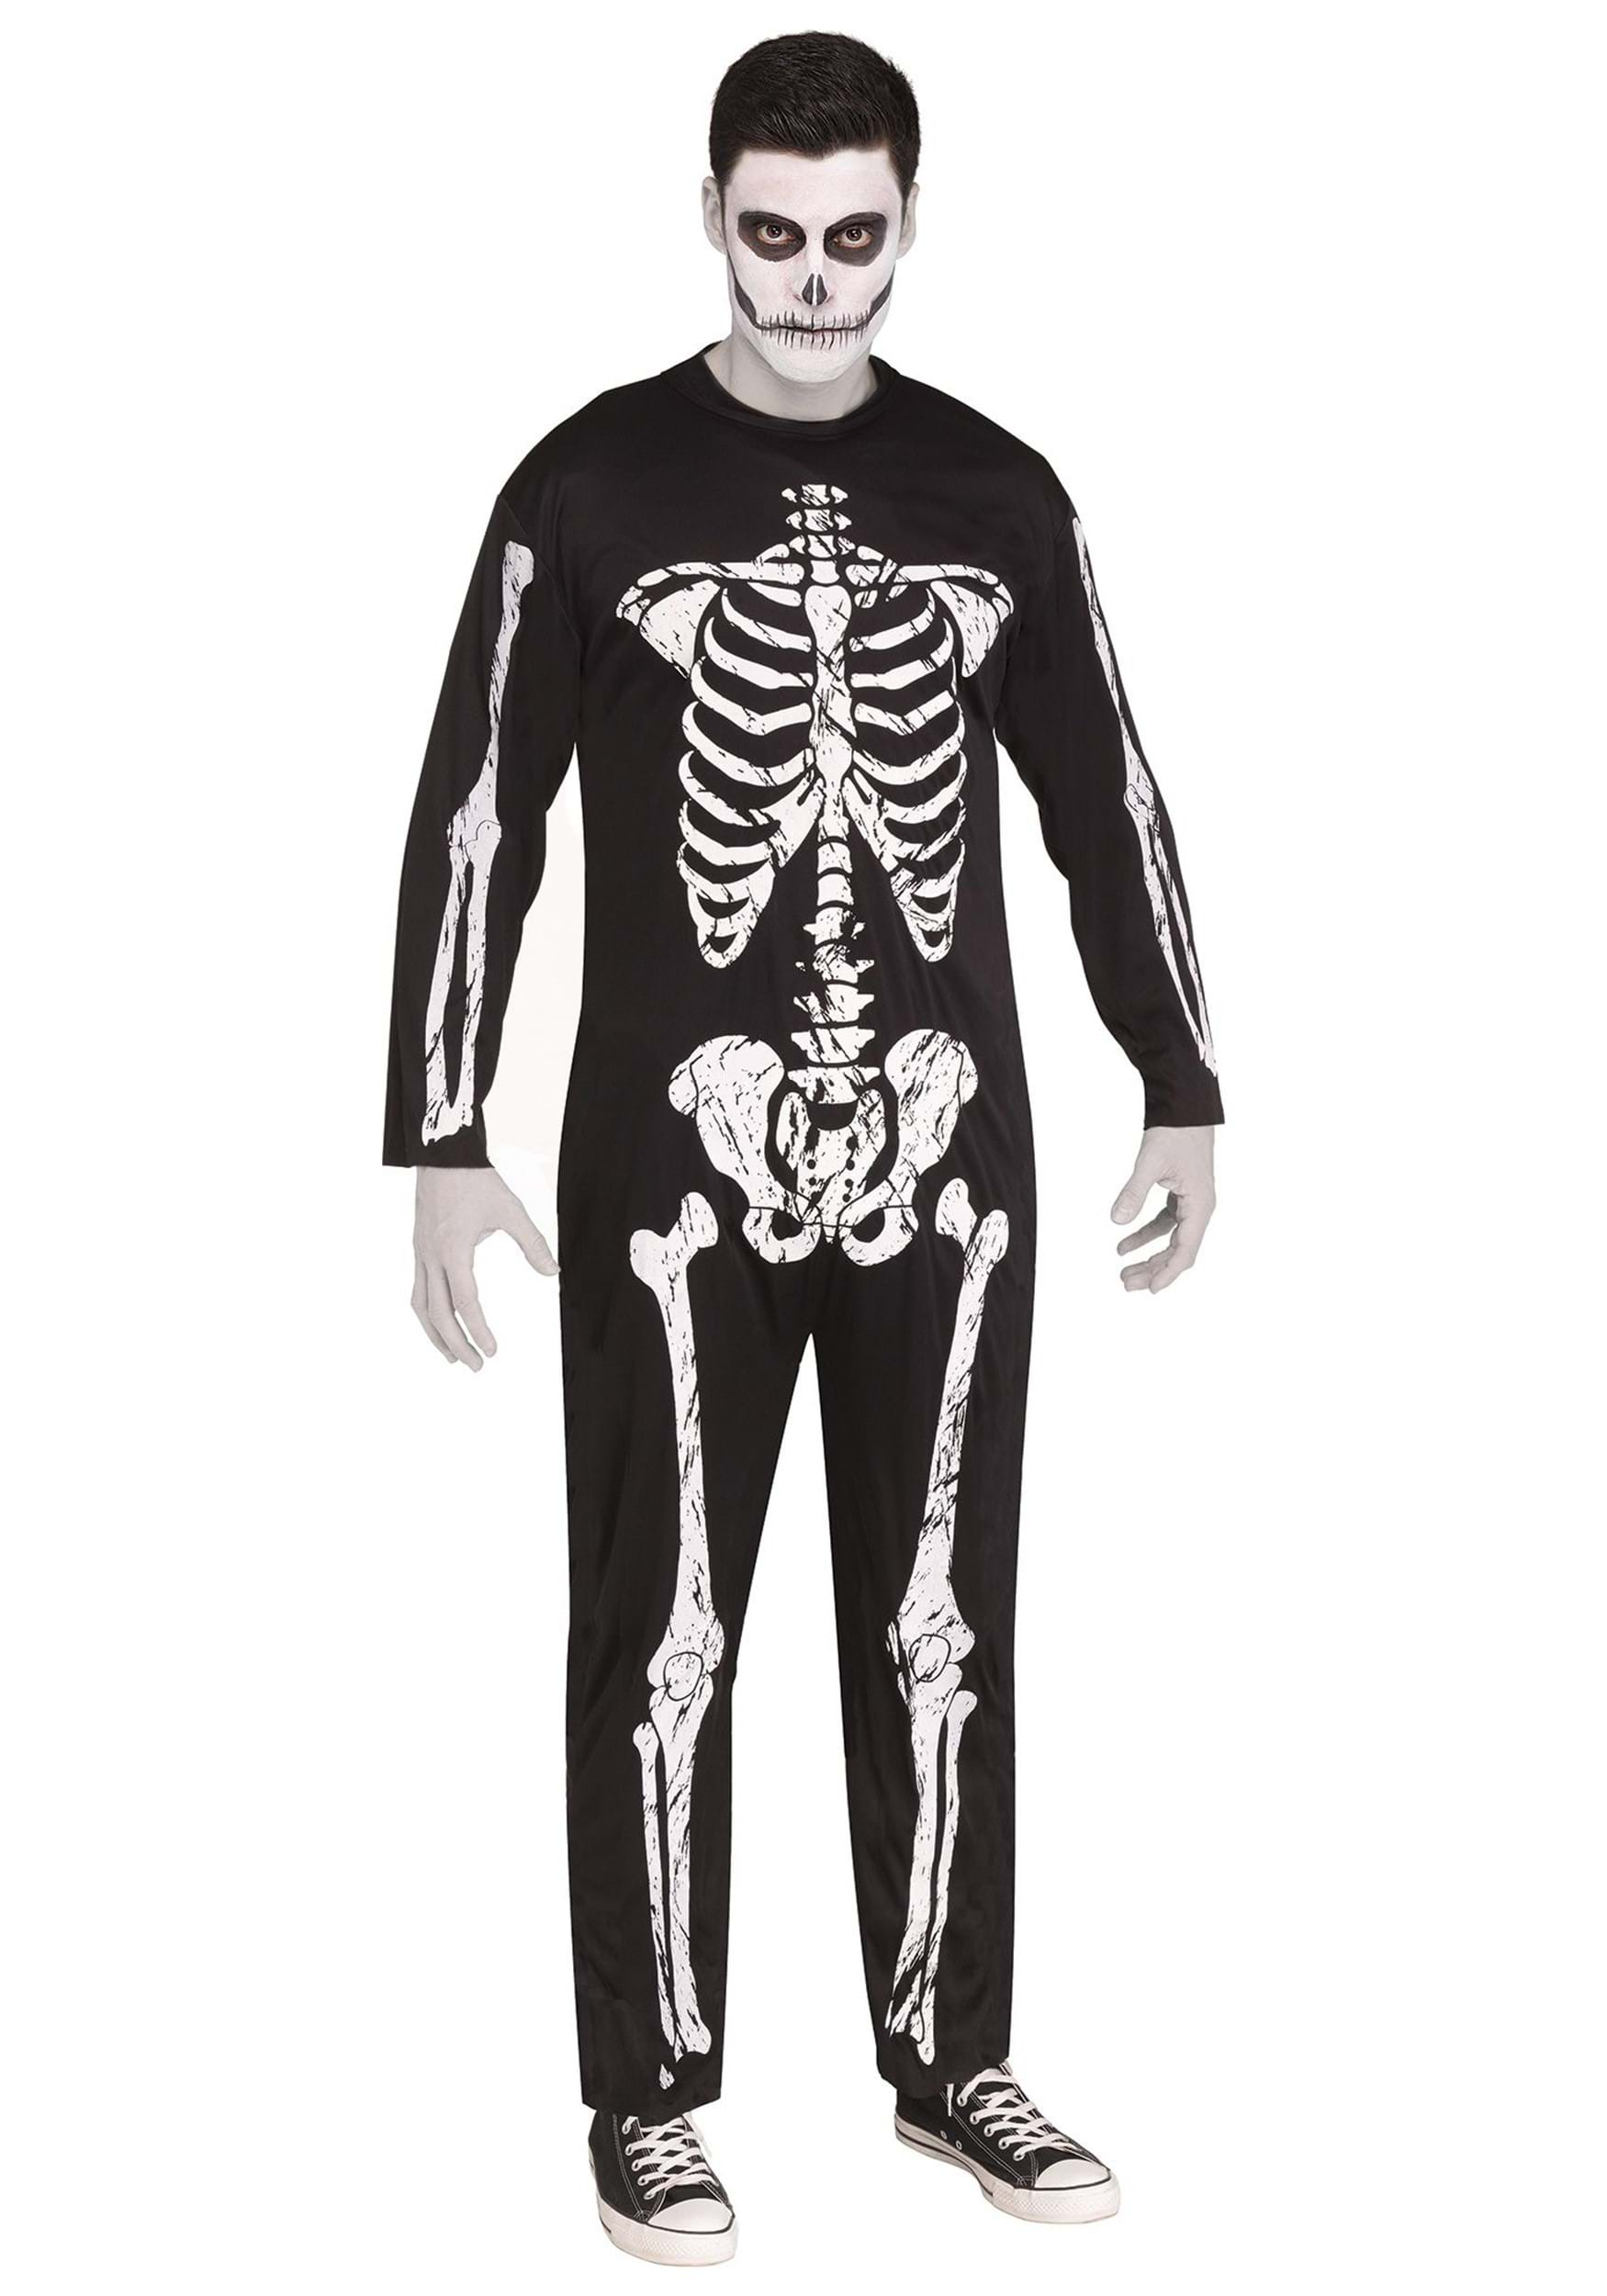 Plus Size Scary Skeleton Costume 2X 3X 4X